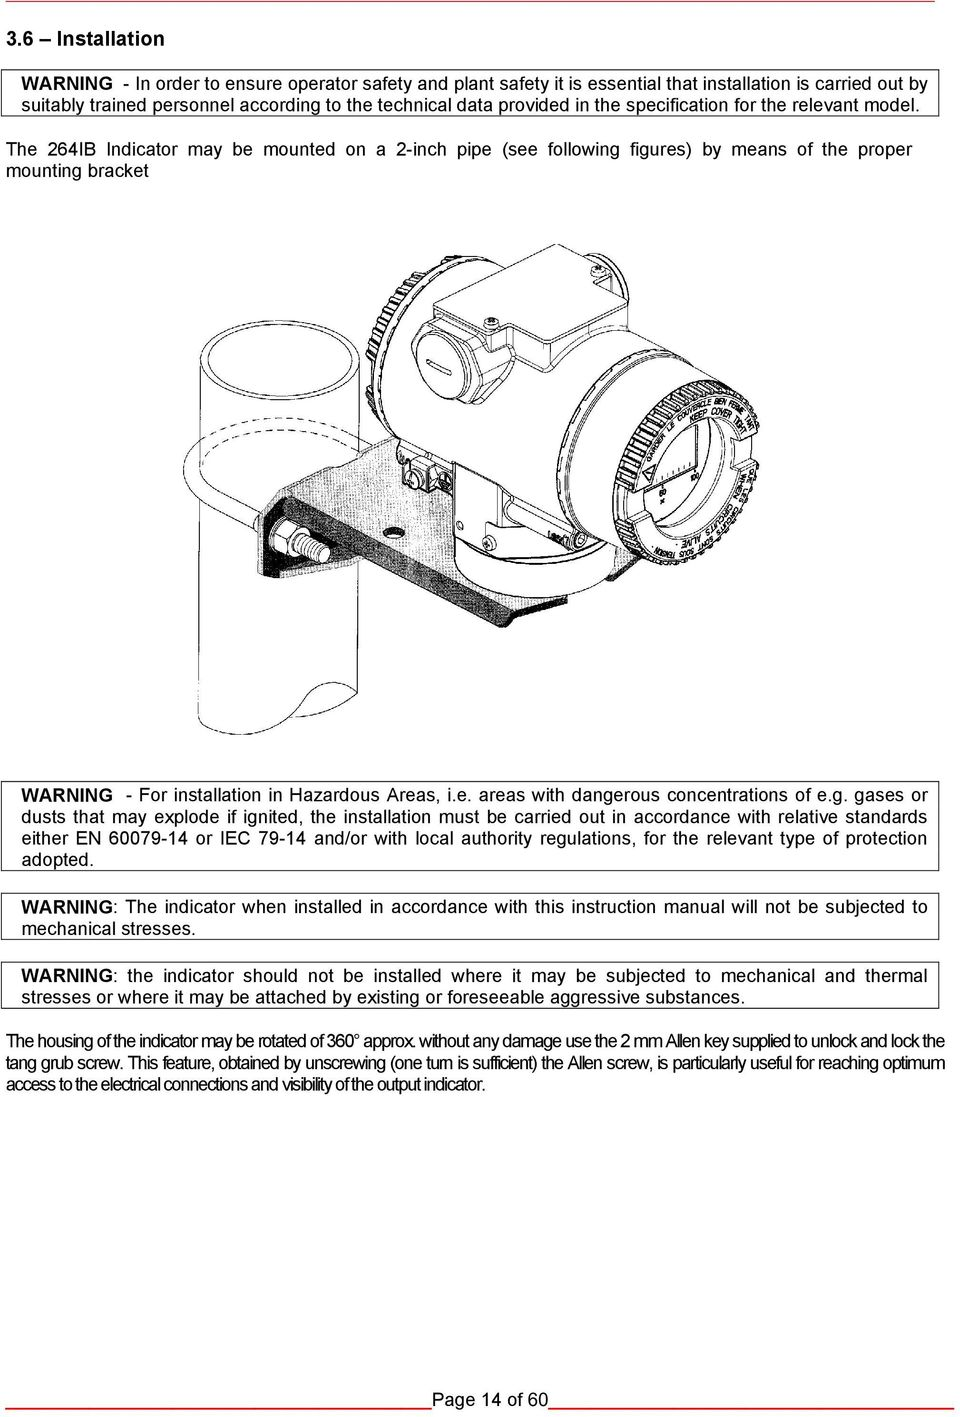 The 264IB Indicator may be mounted on a 2-inch pipe (see following figures) by means of the proper mounting bracket WARNING - For installation in Hazardous Areas, i.e. areas with dangerous concentrations of e.